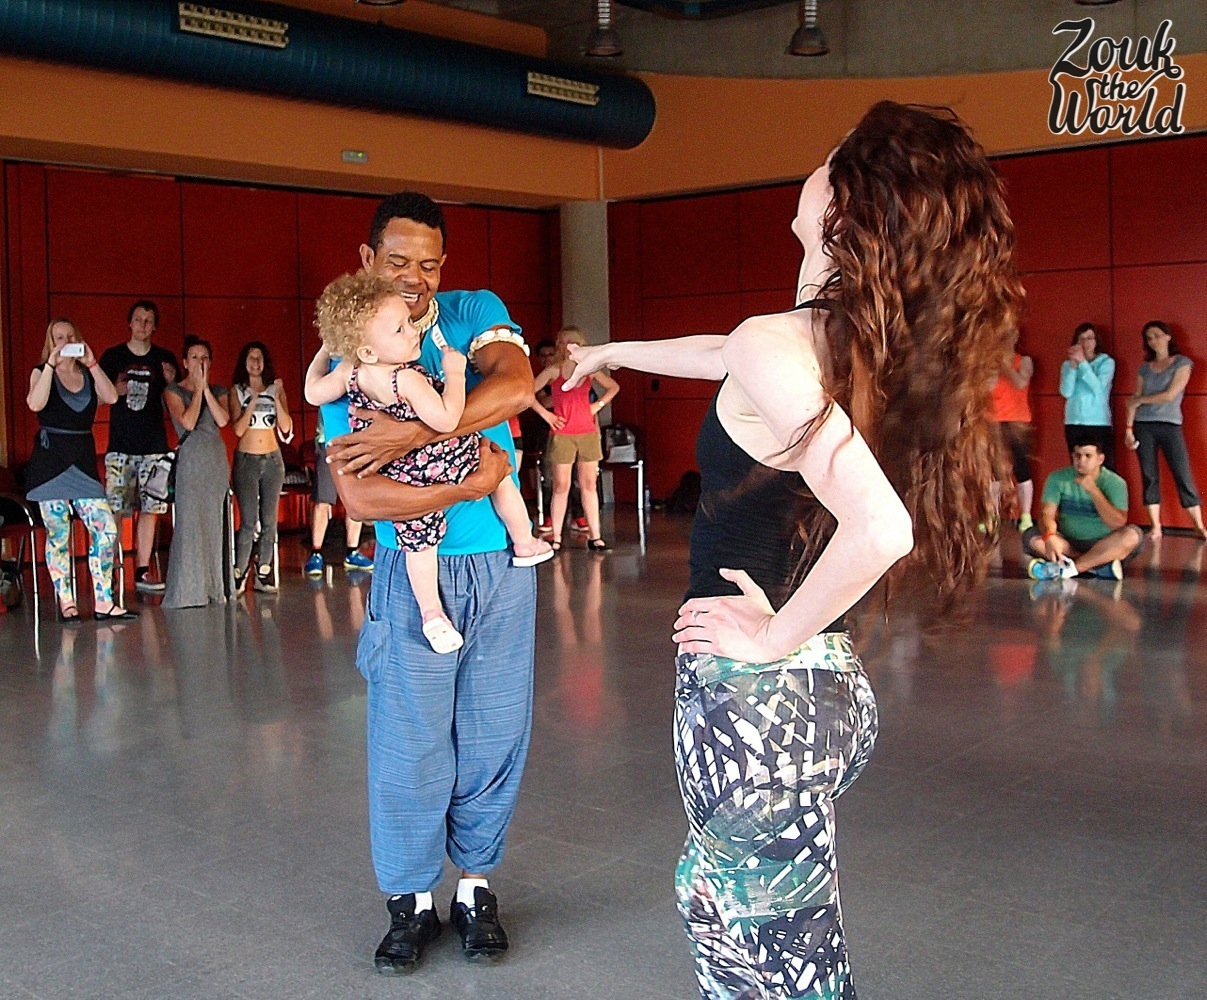 Braz giving a demo at the end of his class with Karin (right) and Sophia (in his arms) - one of my favorite workshops!